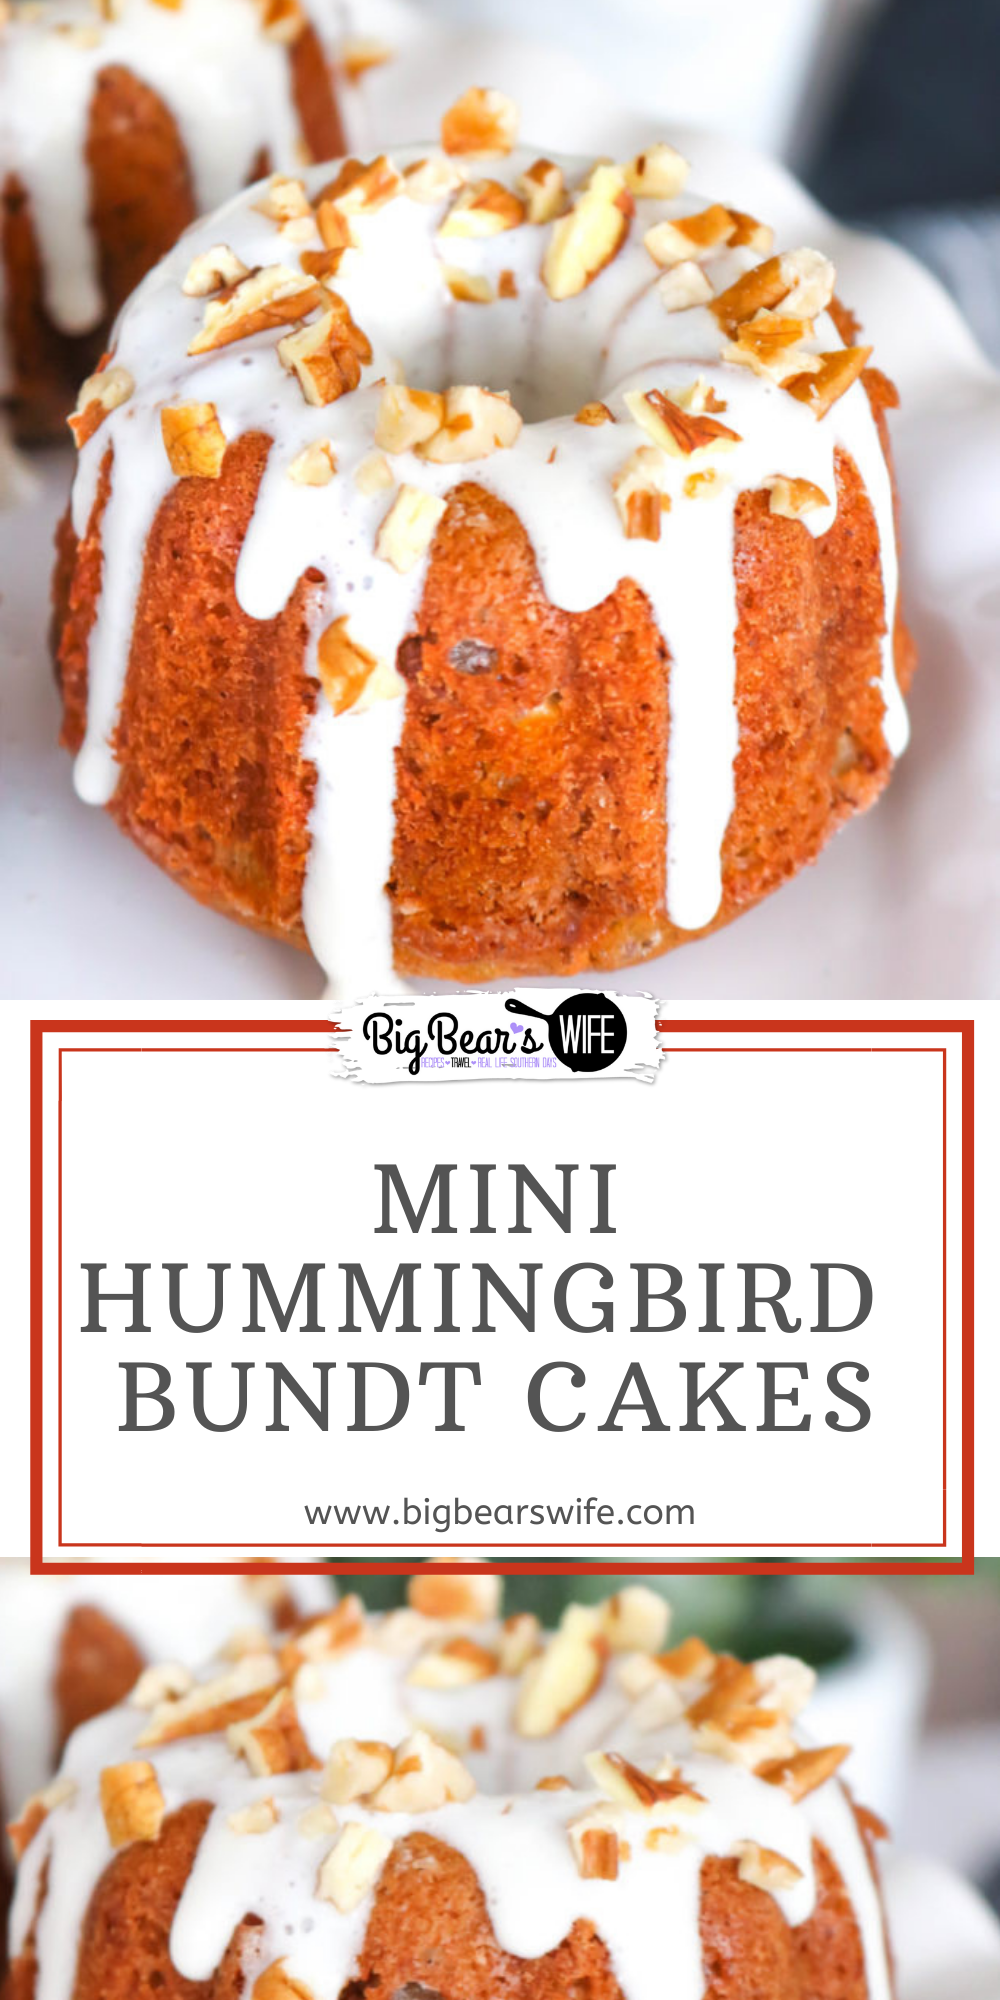 Stuffed with bananas, pecans, and pineapple these Hummingbird Mini Bundt Cakes make for a wonderful Easter dessert, a church potluck or Mother's Day brunch. This southern classic has been turned into divine individual dessert with a mini bundt pan. via @bigbearswife